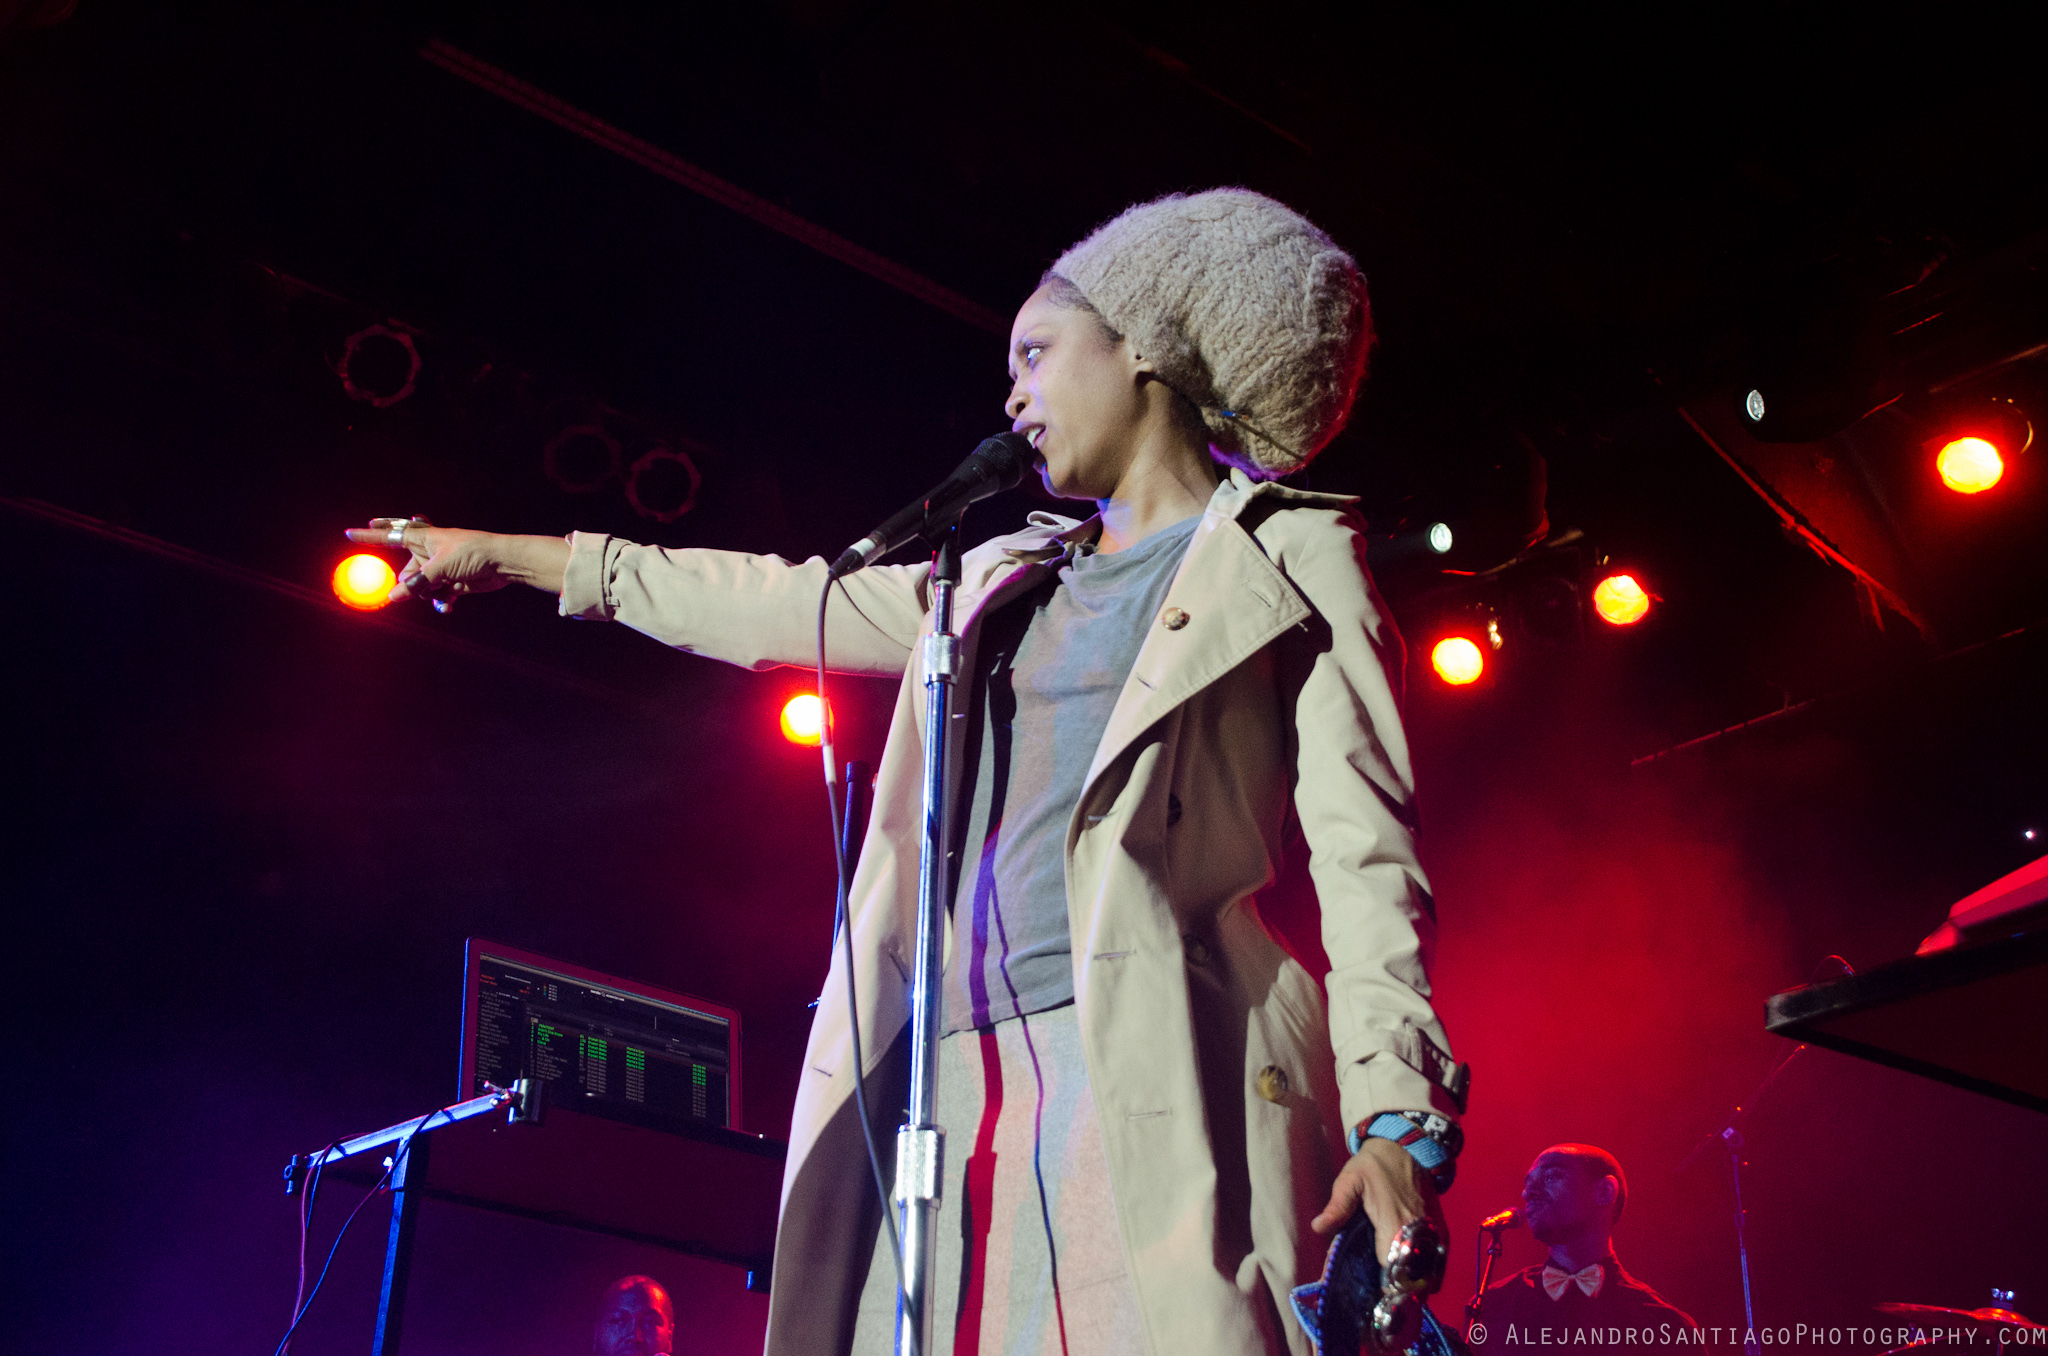 Erykah badu flaming lips - 2 part 7